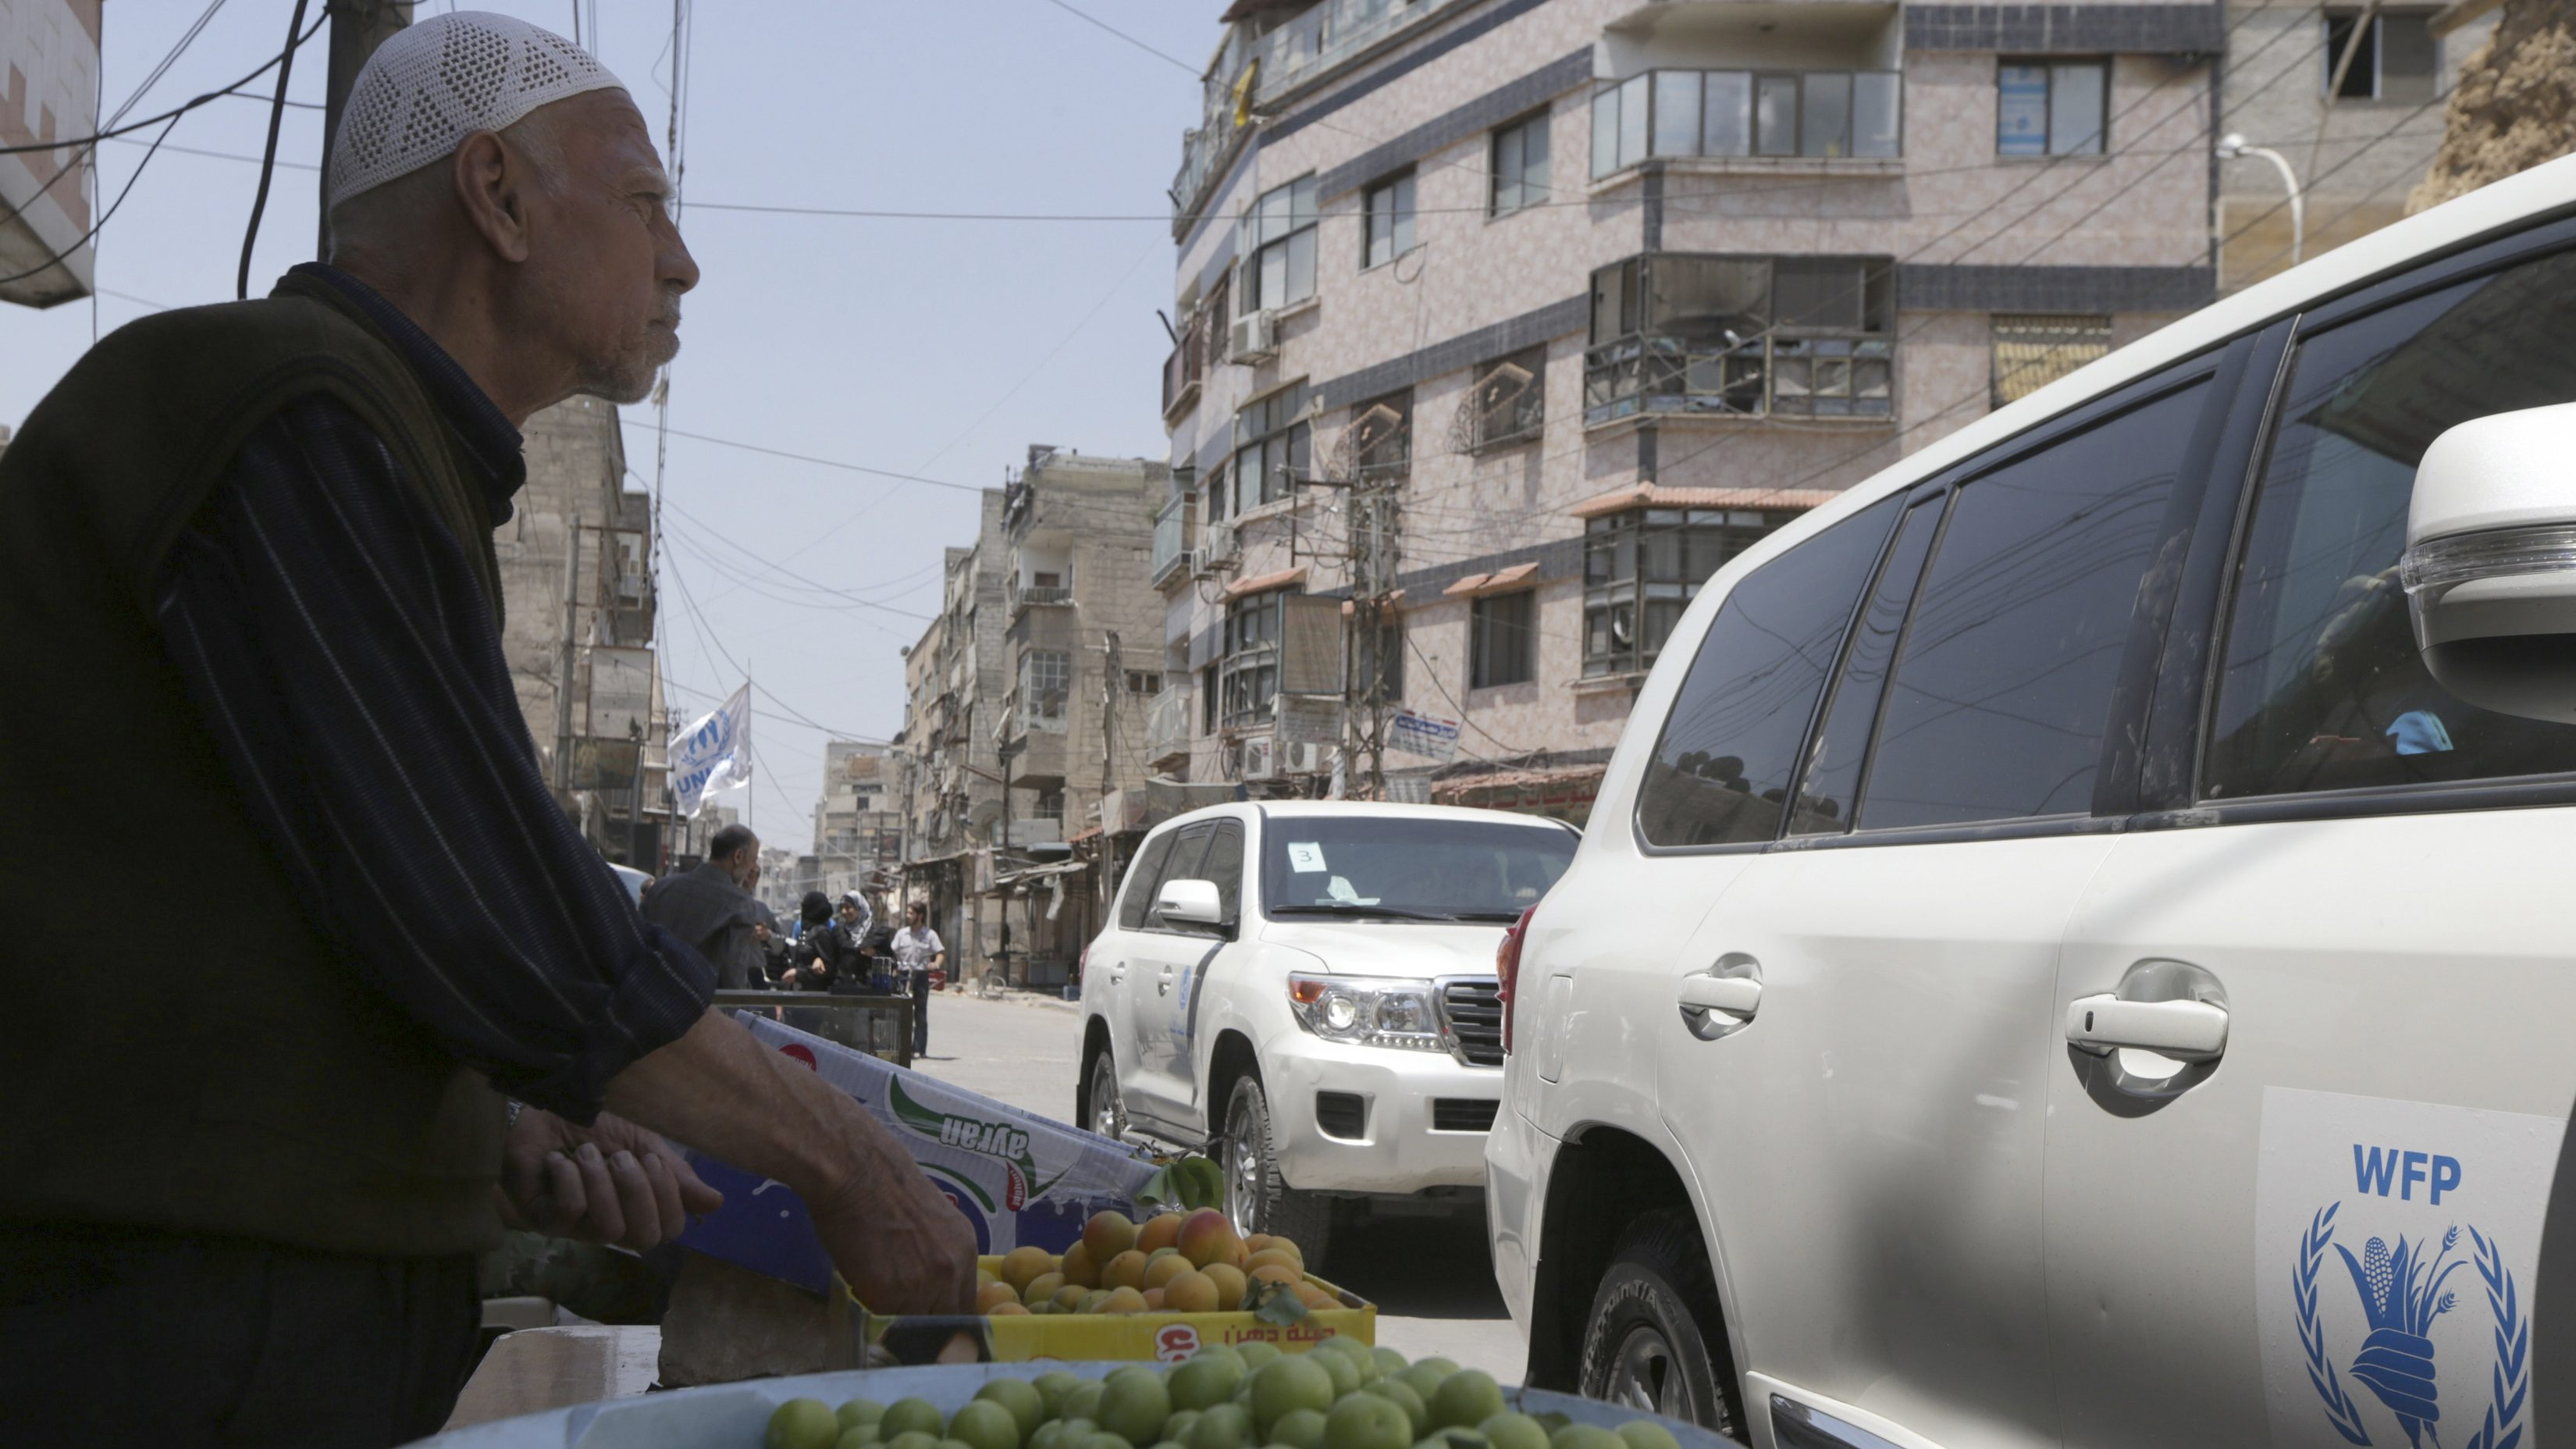 A fruit vendor stands beside passing World Food Program vehicles in eastern Ghouta of Damascus, May 24, 2014. A delegation from the United Nations, the World Food Program, UNICEF and the World Health Organization, accompanied by the Syrian Red Crescent, visited the eastern Damascus suburb of Ghouta carrying humanitarian aid to be distributed to the residents, and moved in the area accompanied by the Free Syrian Army, activists said.